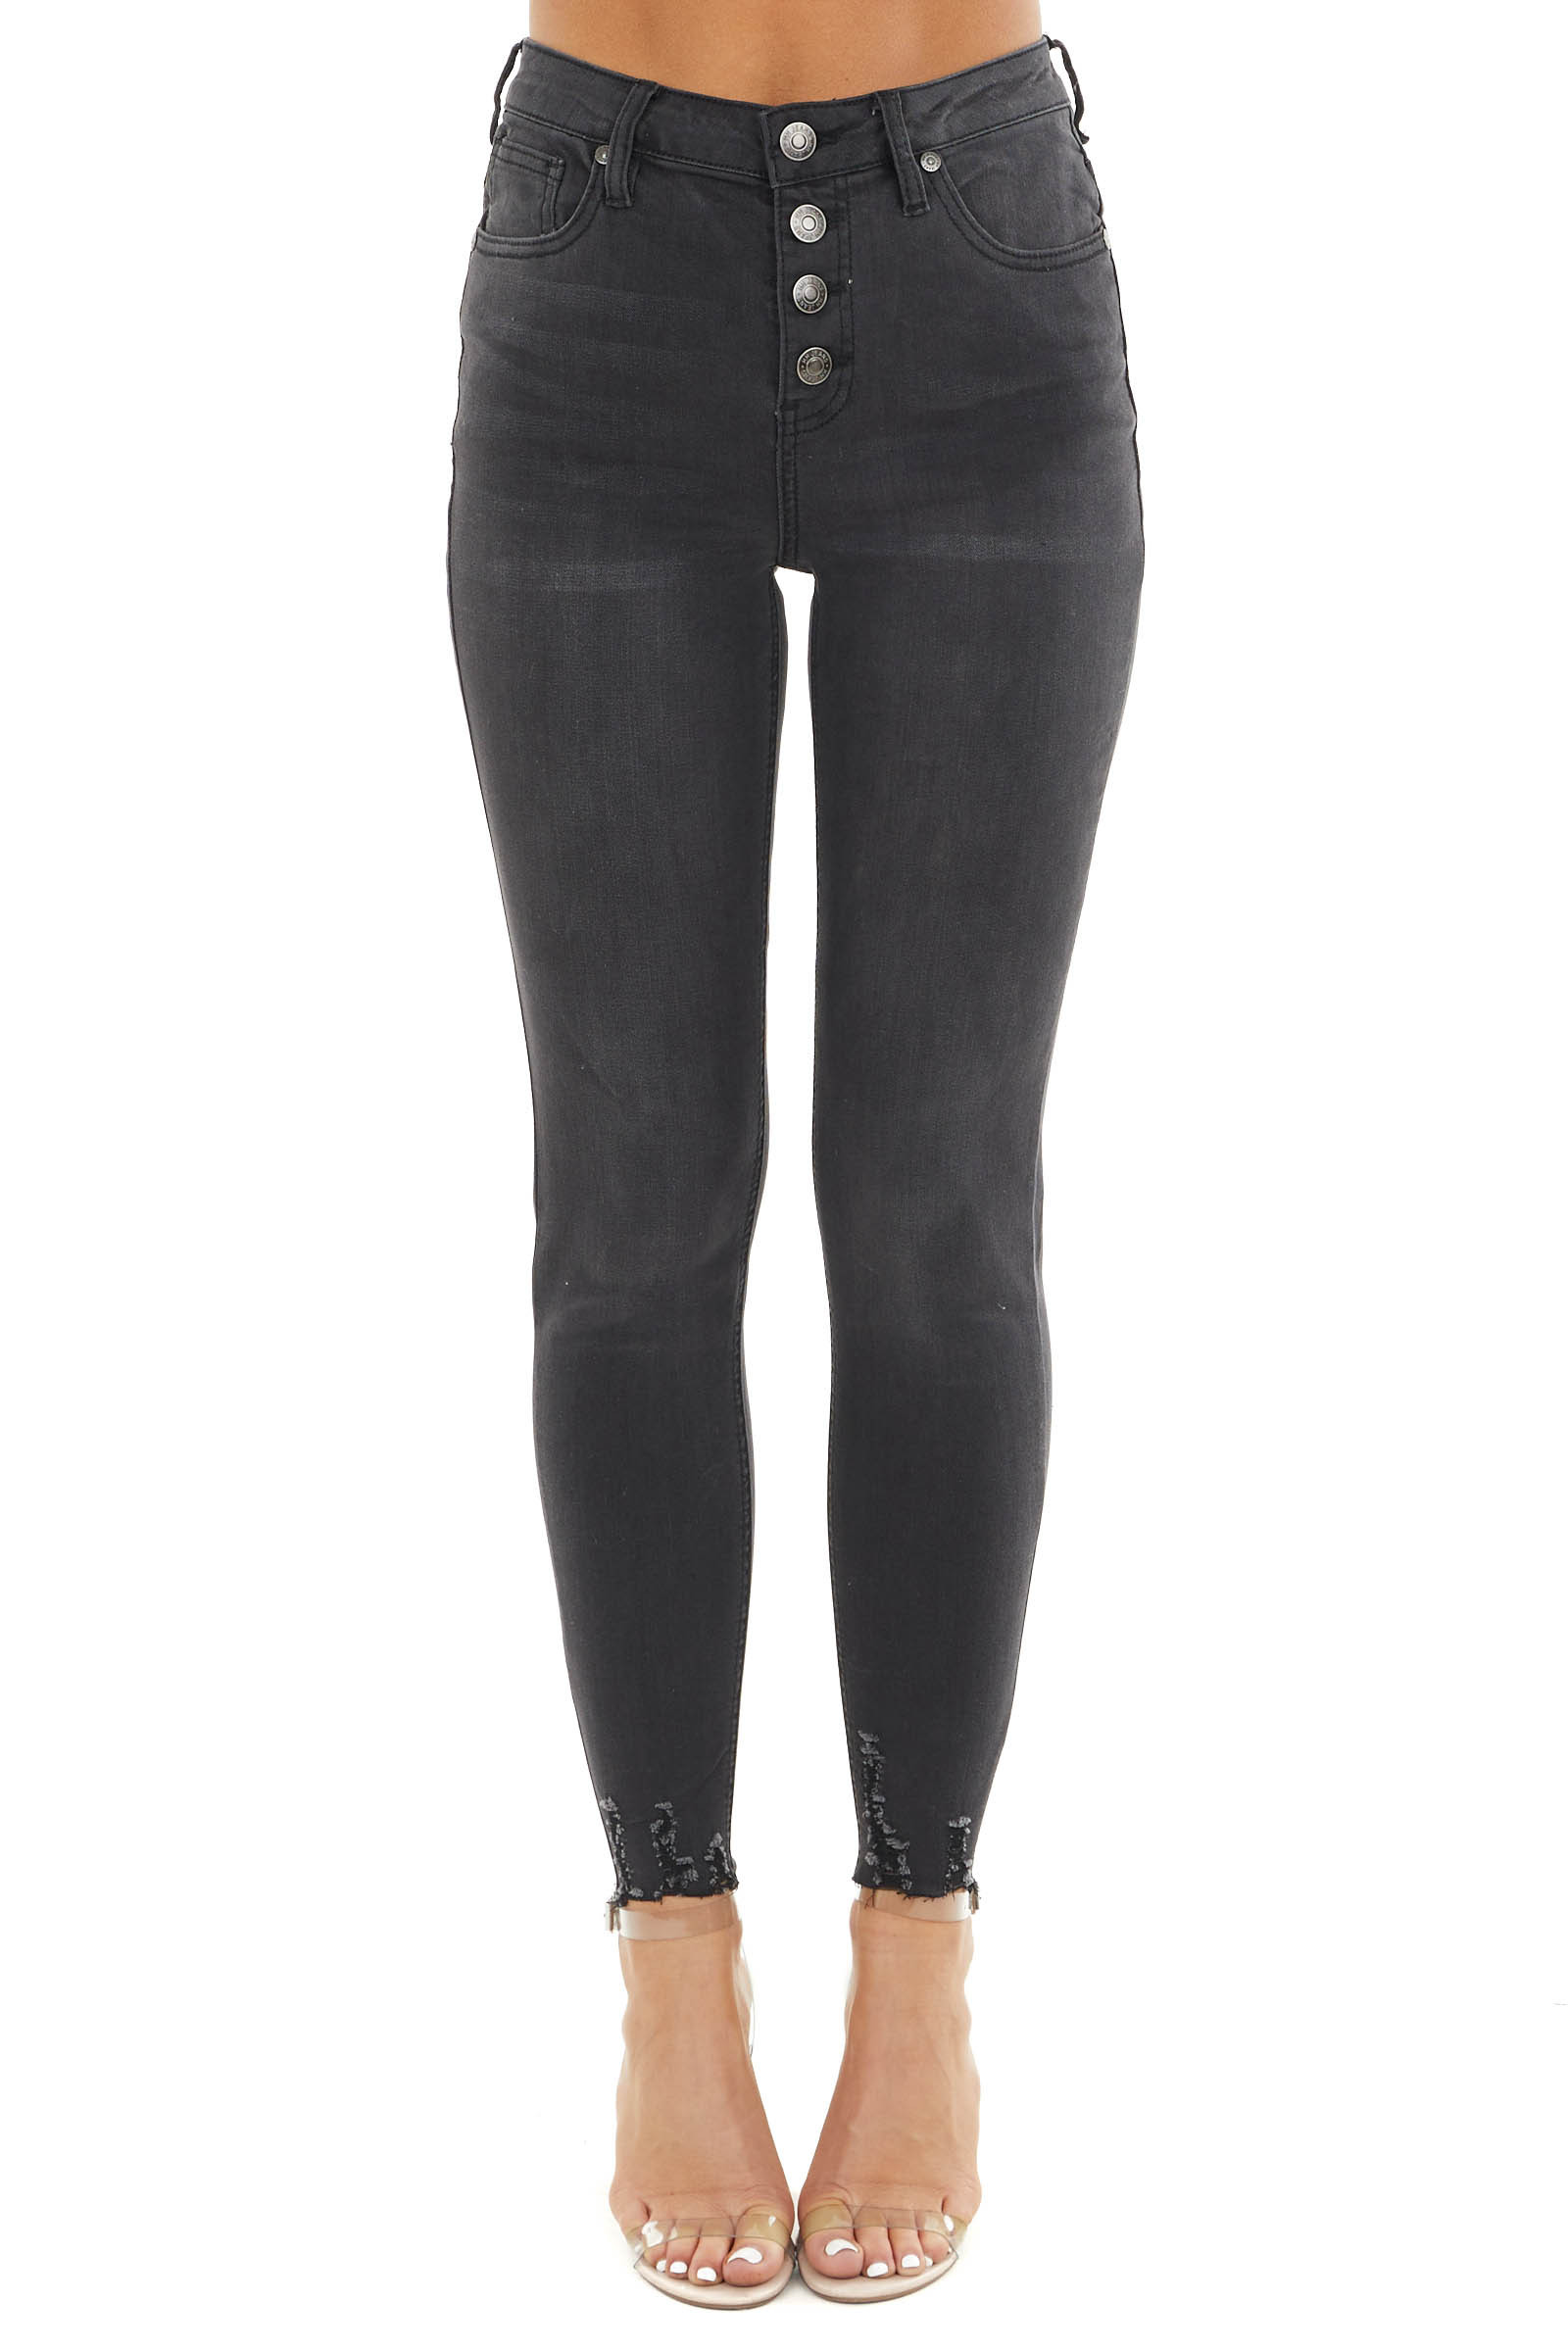 Black High Rise Button Up Skinny Jeans with Distressing